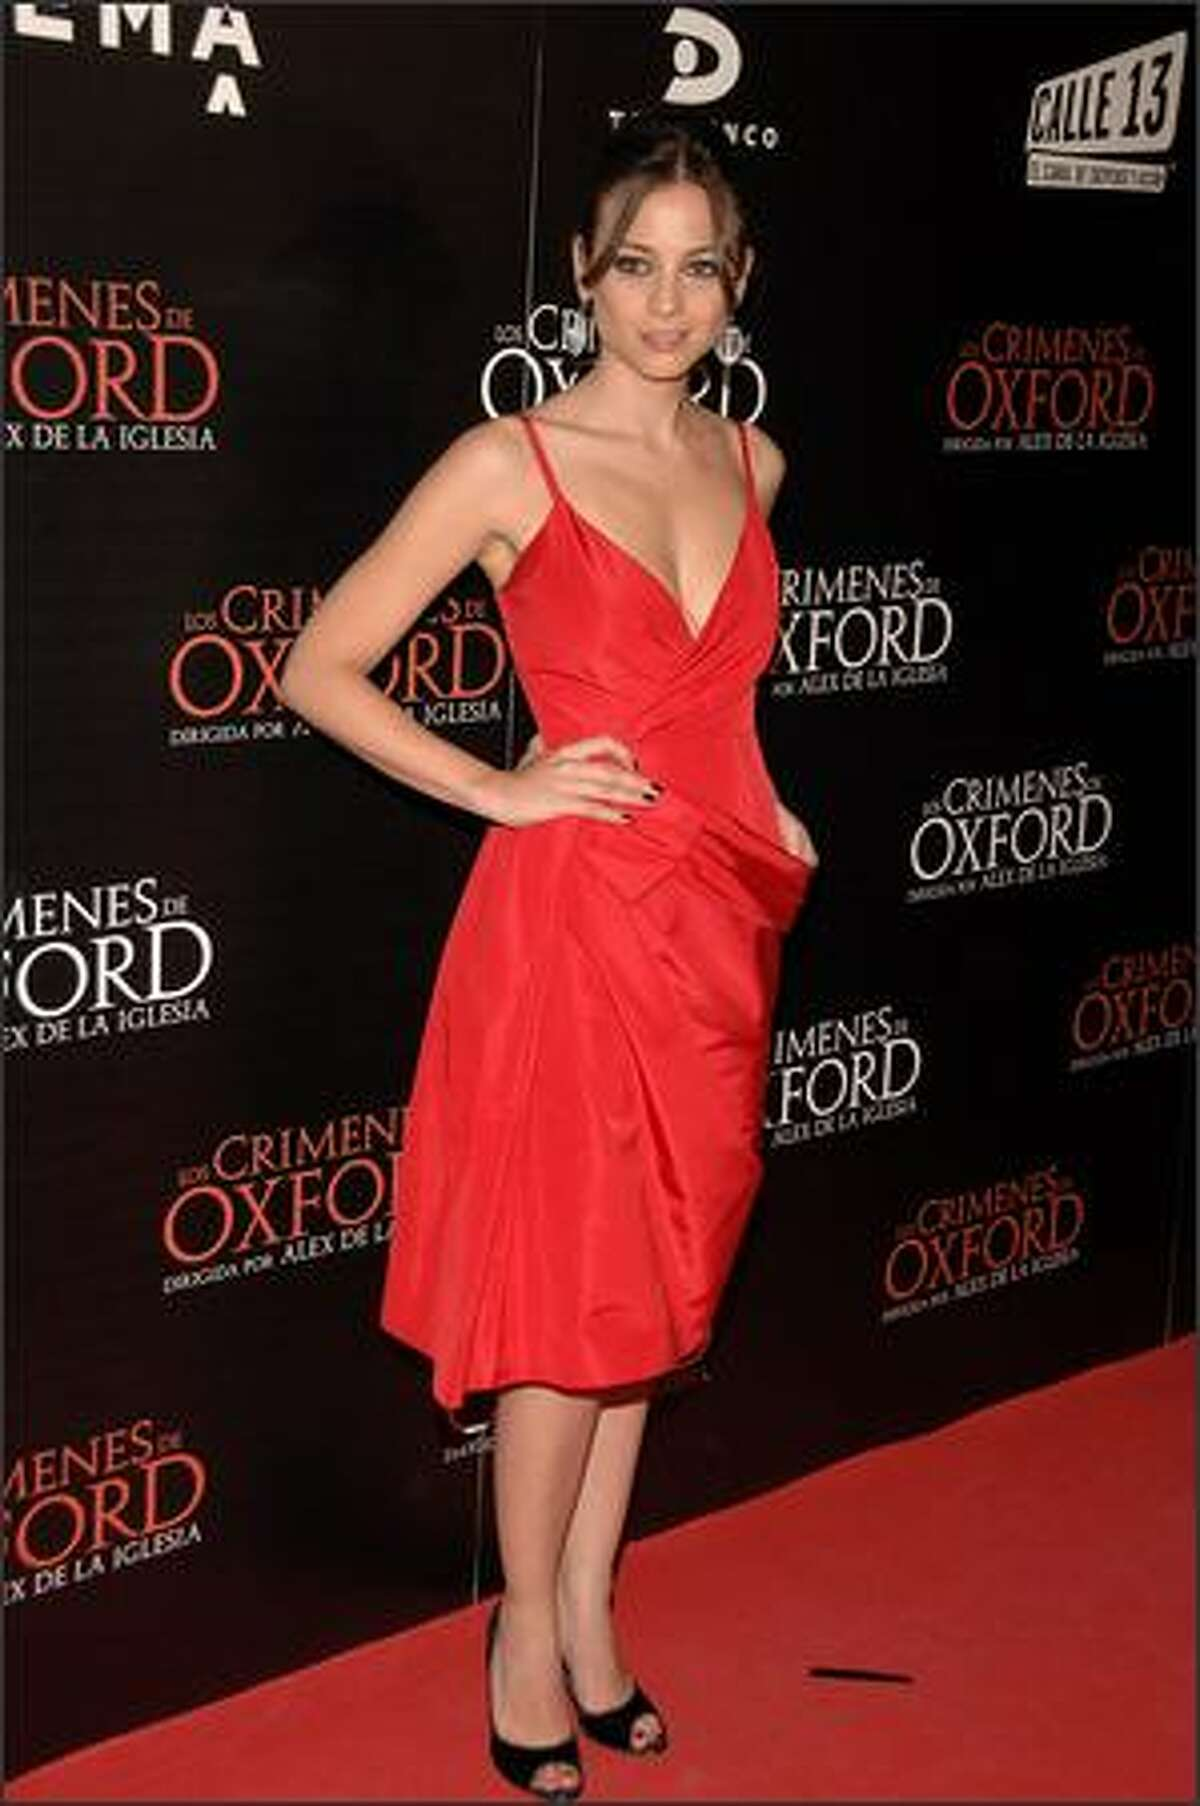 Spanish actress Leonor Watling attends the premiere of